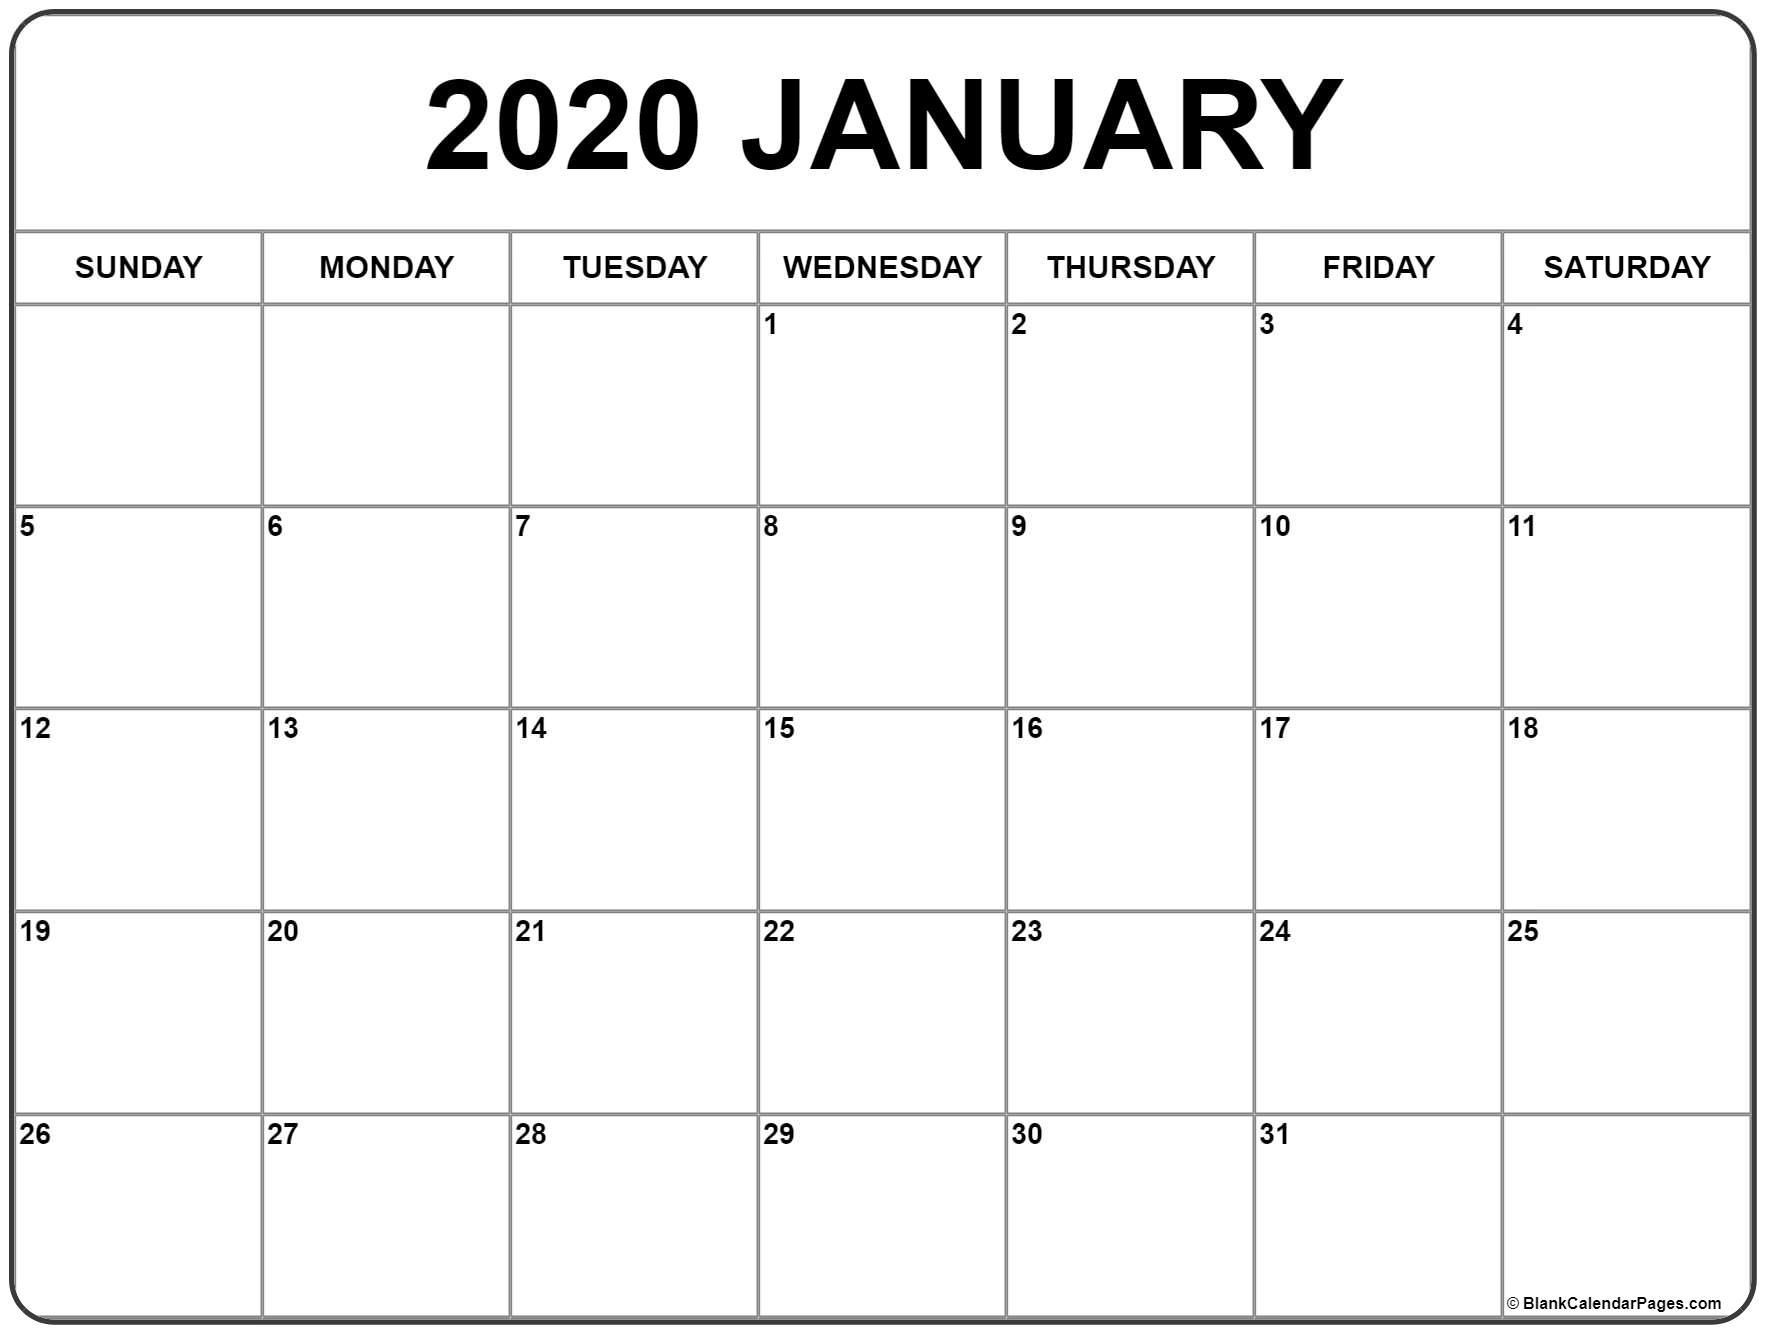 January 2020 Calendar | Free Printable Monthly Calendars